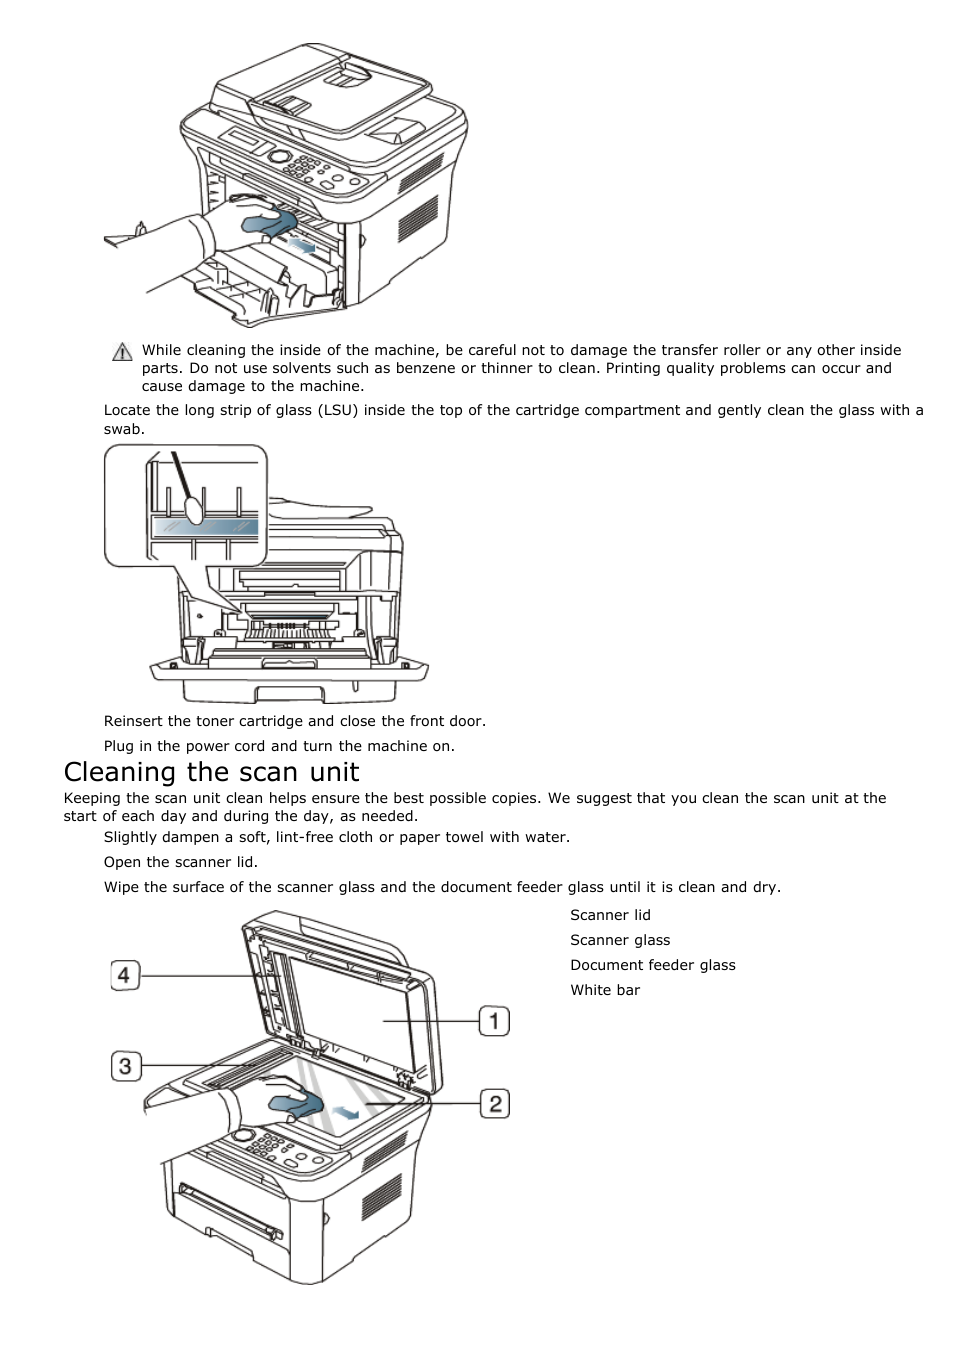 Cleaning the scan unit | Dell 1135n Multifunction Mono Laser